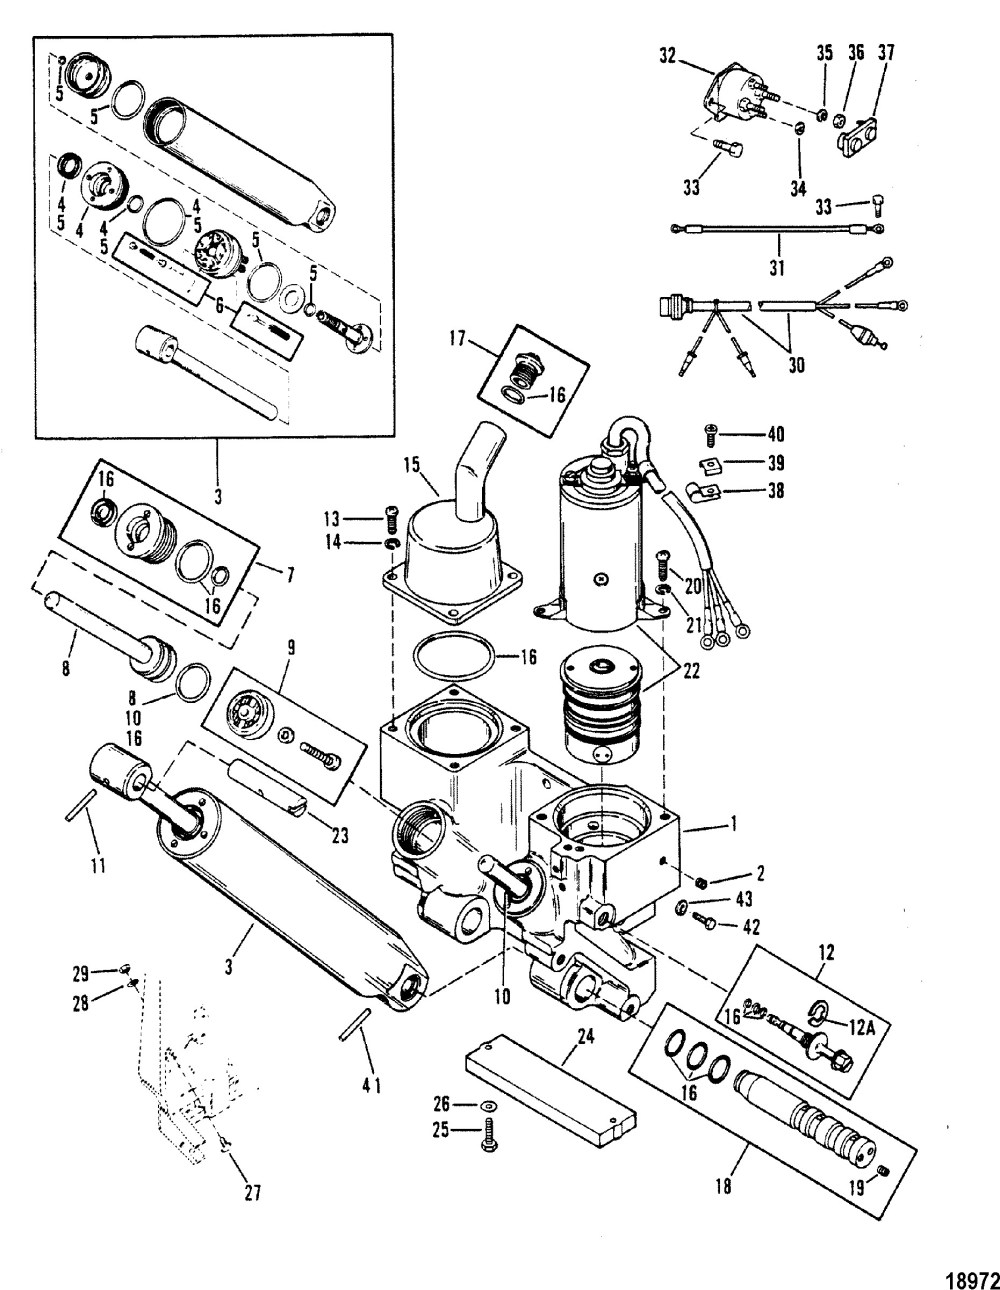 medium resolution of power trim ponents for mariner mercury 90 115 h p inline mercury outboard power trim wiring diagram